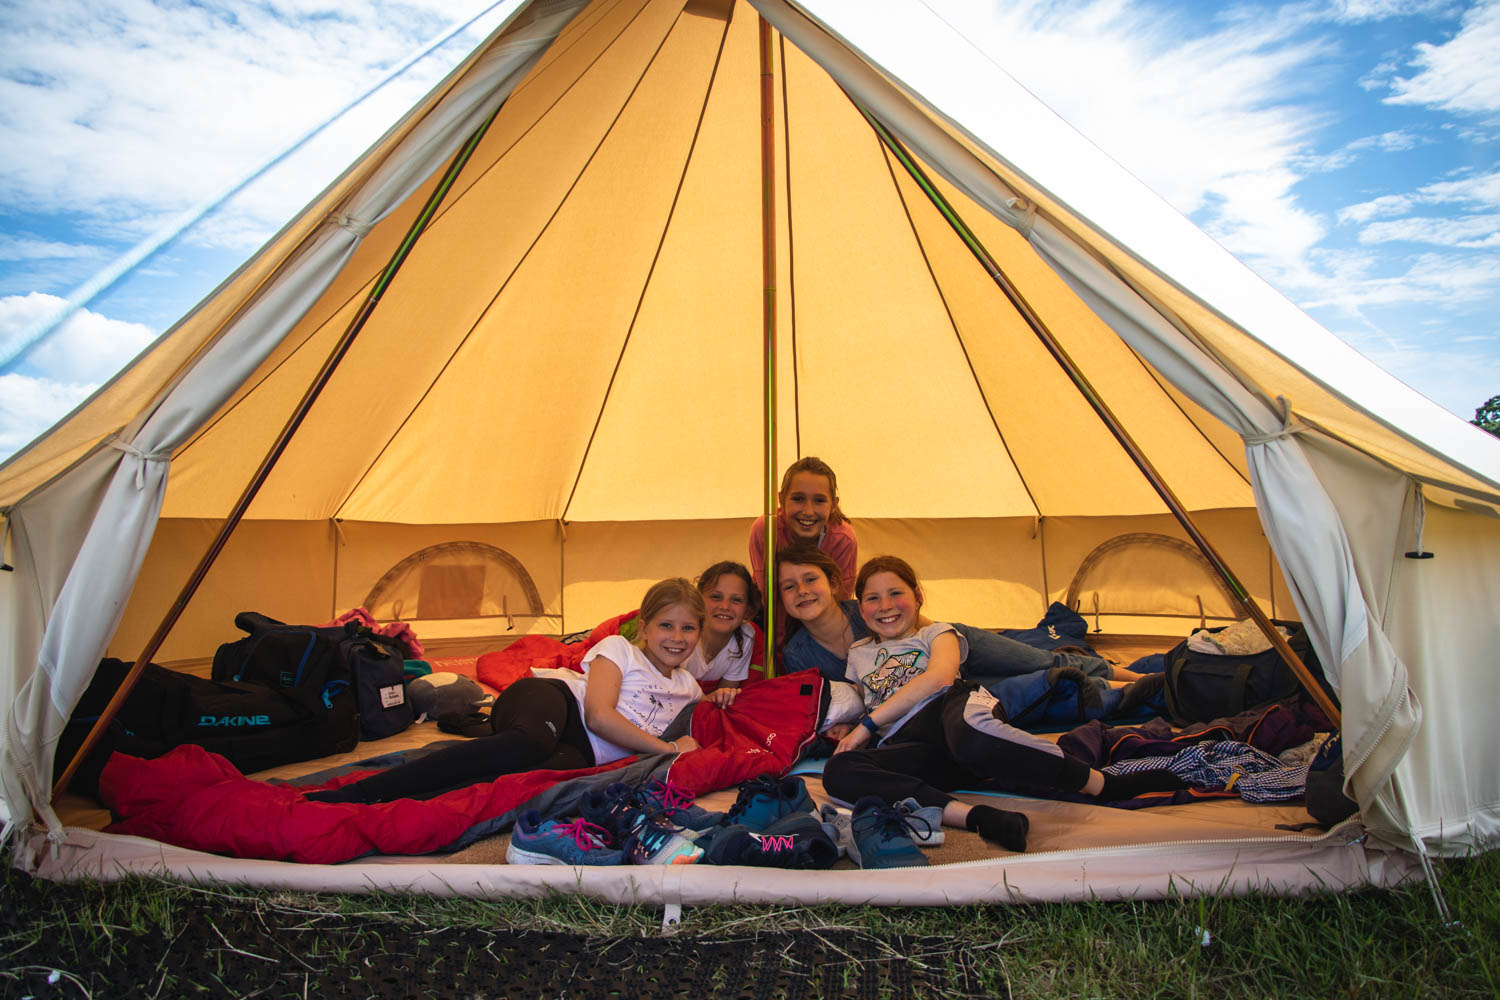 Camping Articles